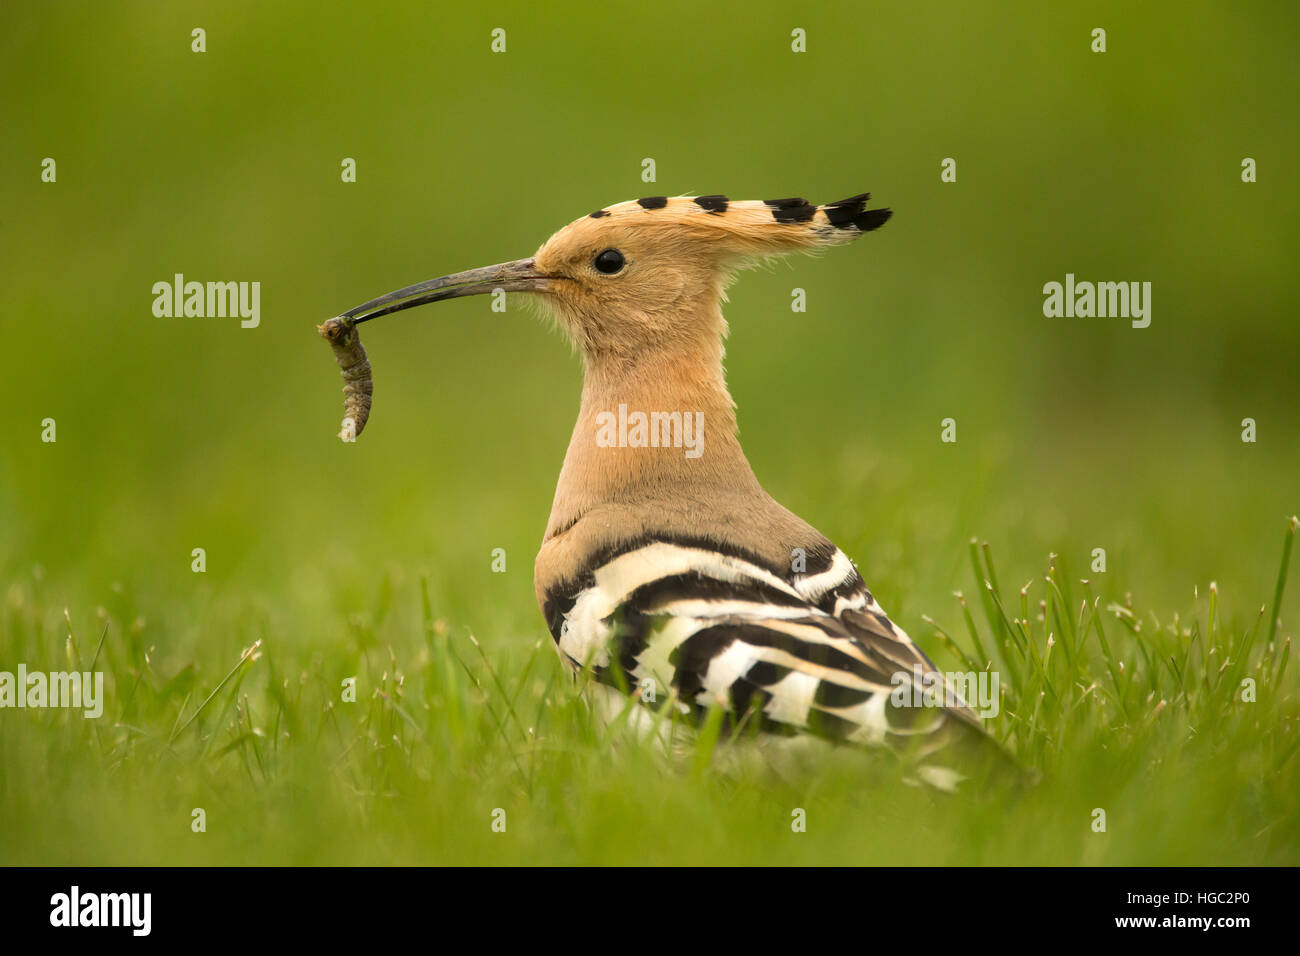 Hoopoe (Upupa epops) with a grub - Stock Image